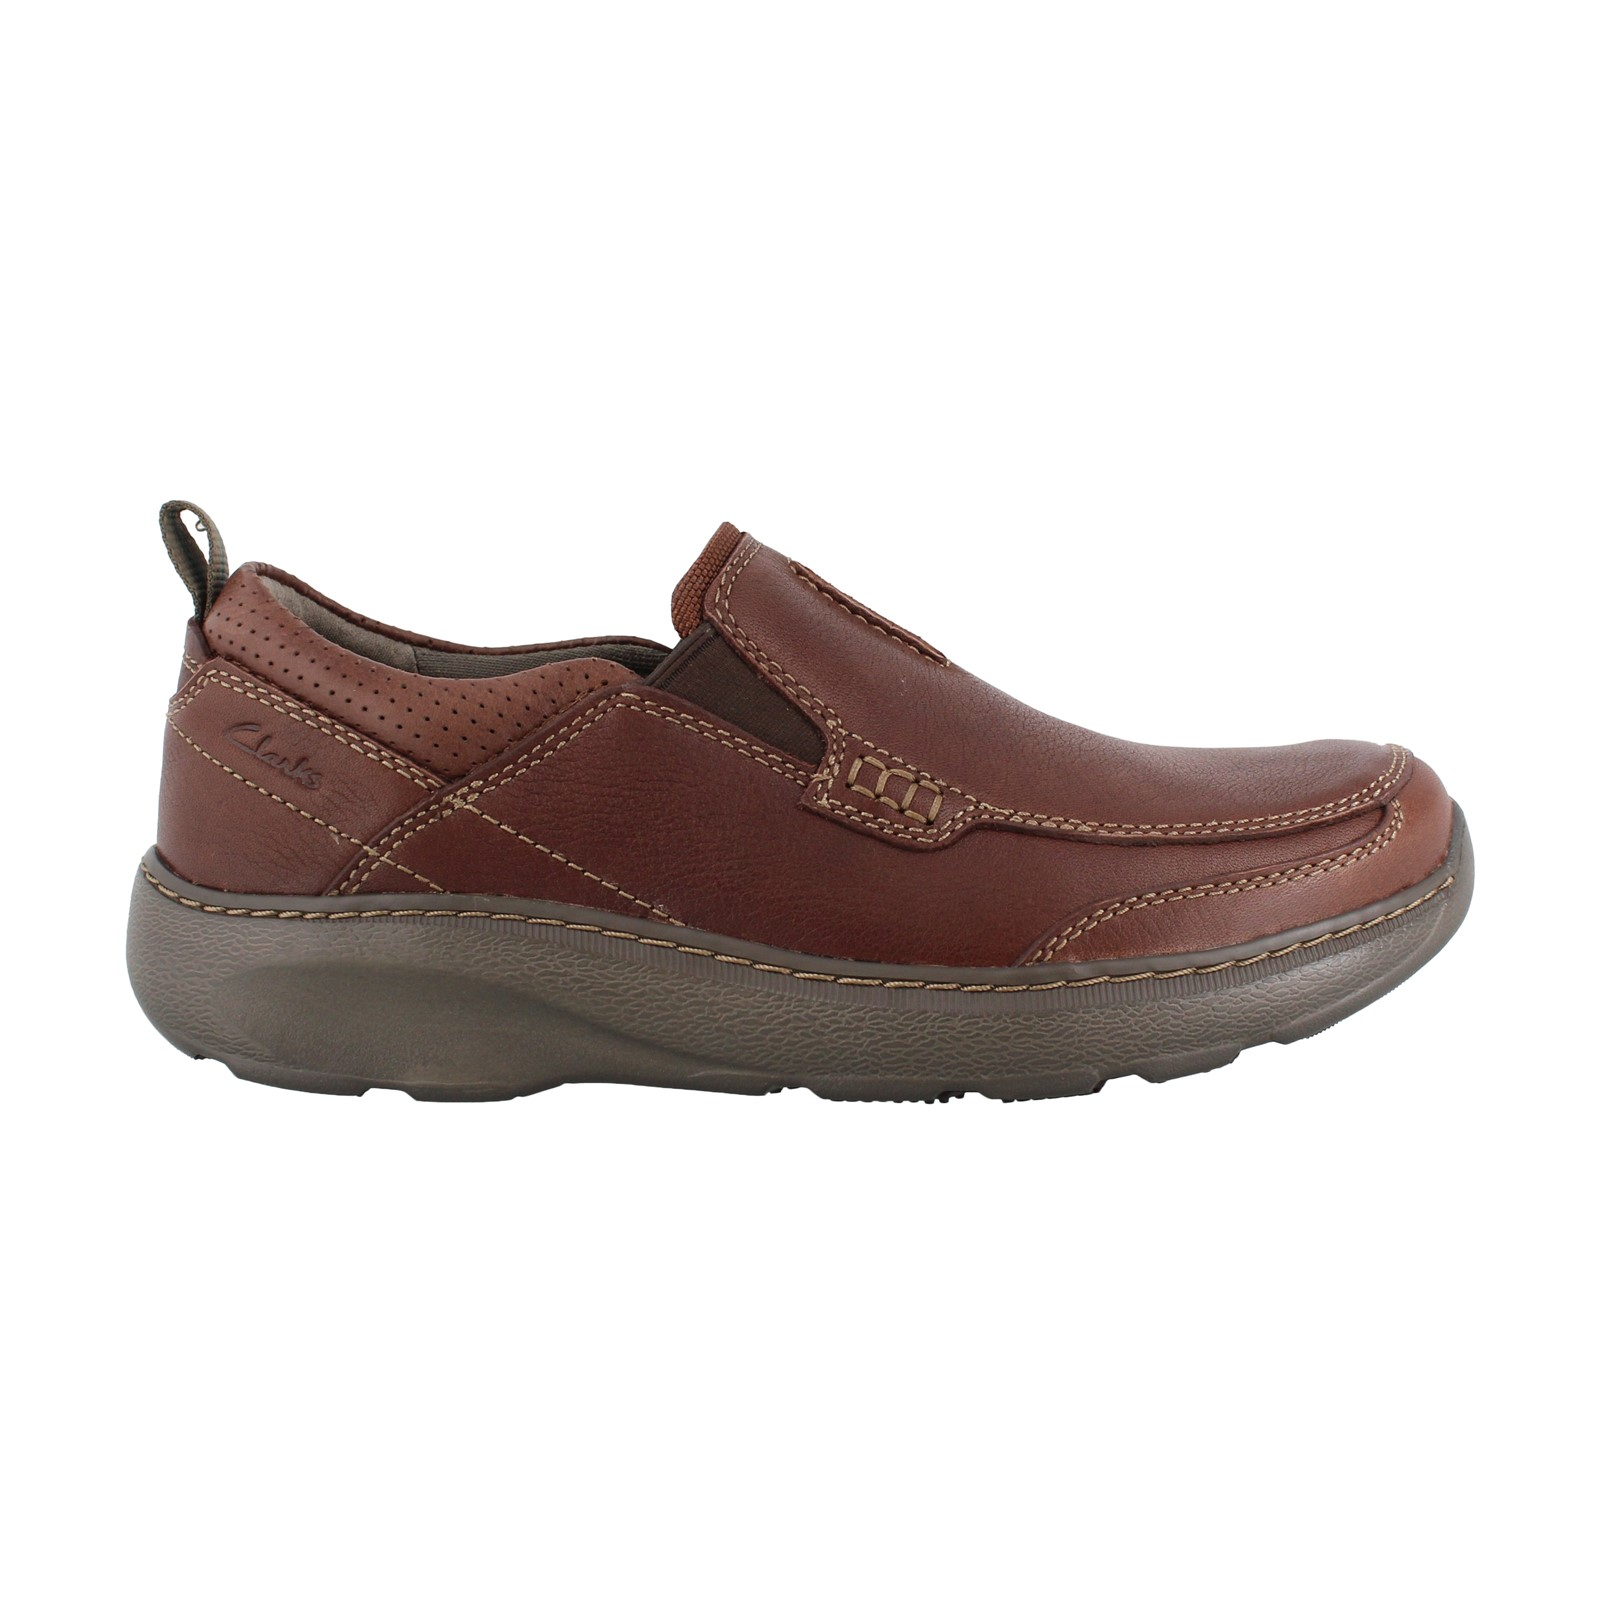 Men's Clarks, Charton Step Slip on Shoes